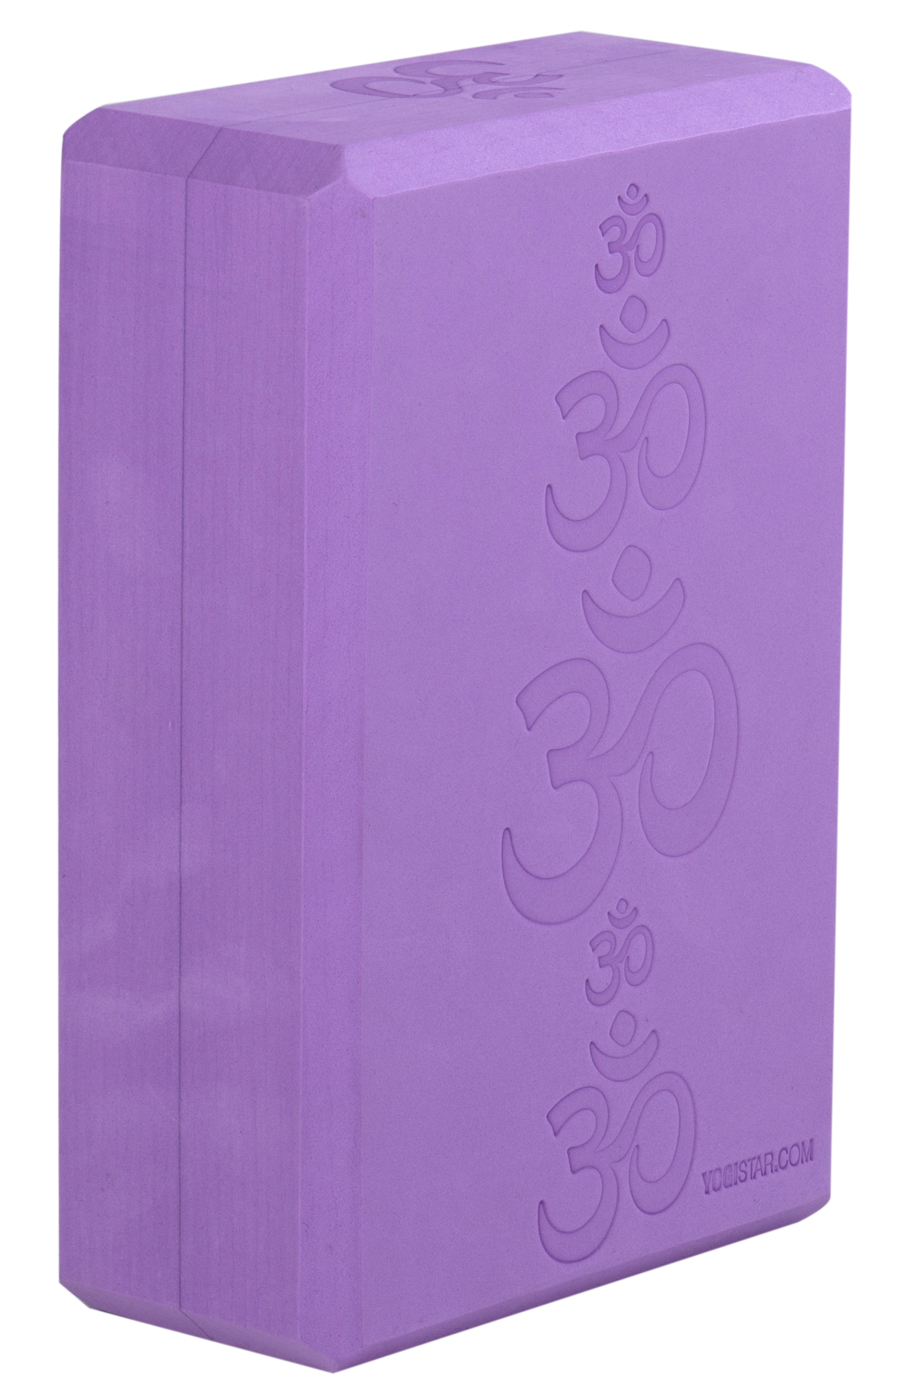 Yoga block - yogiblock 'Big OM'